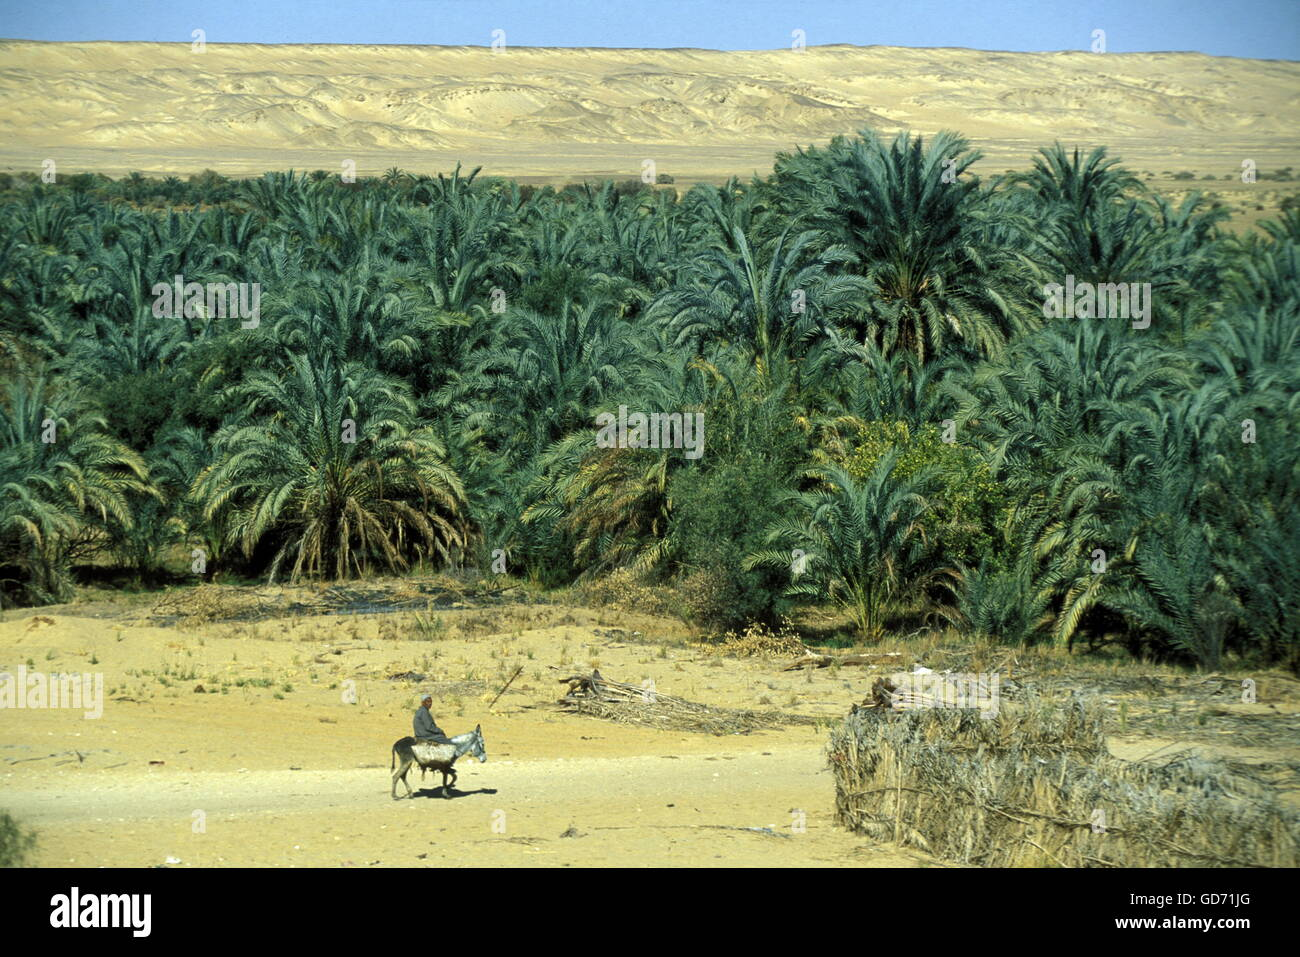 the Landscape and nature of the Oasis and village of Siwa in the lybian or western desert of Egypt in north africa - Stock Image